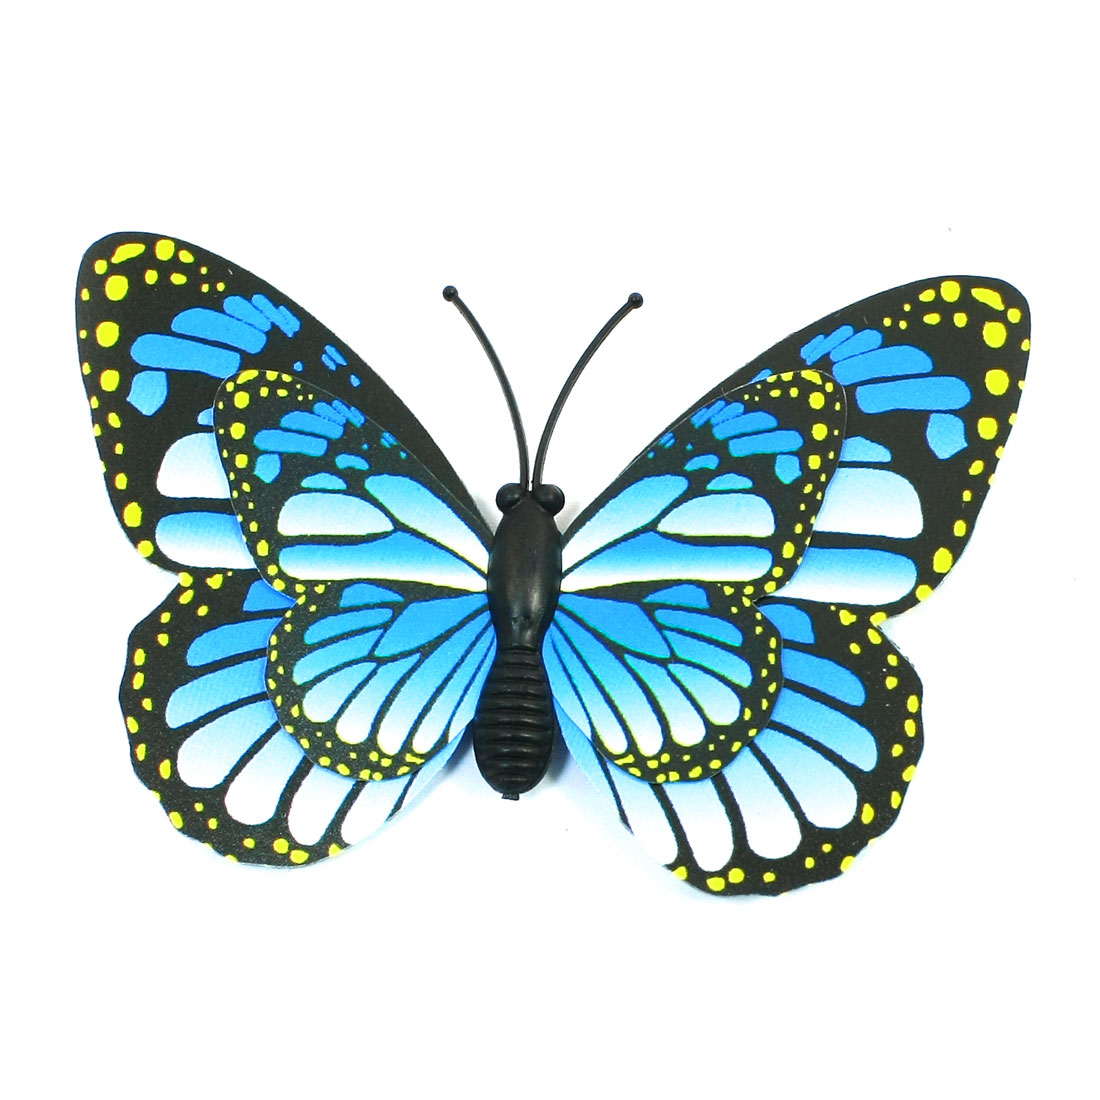 Plastic Blue Black Butterfly Magnetic Sticker for Home Refrigerator Decor